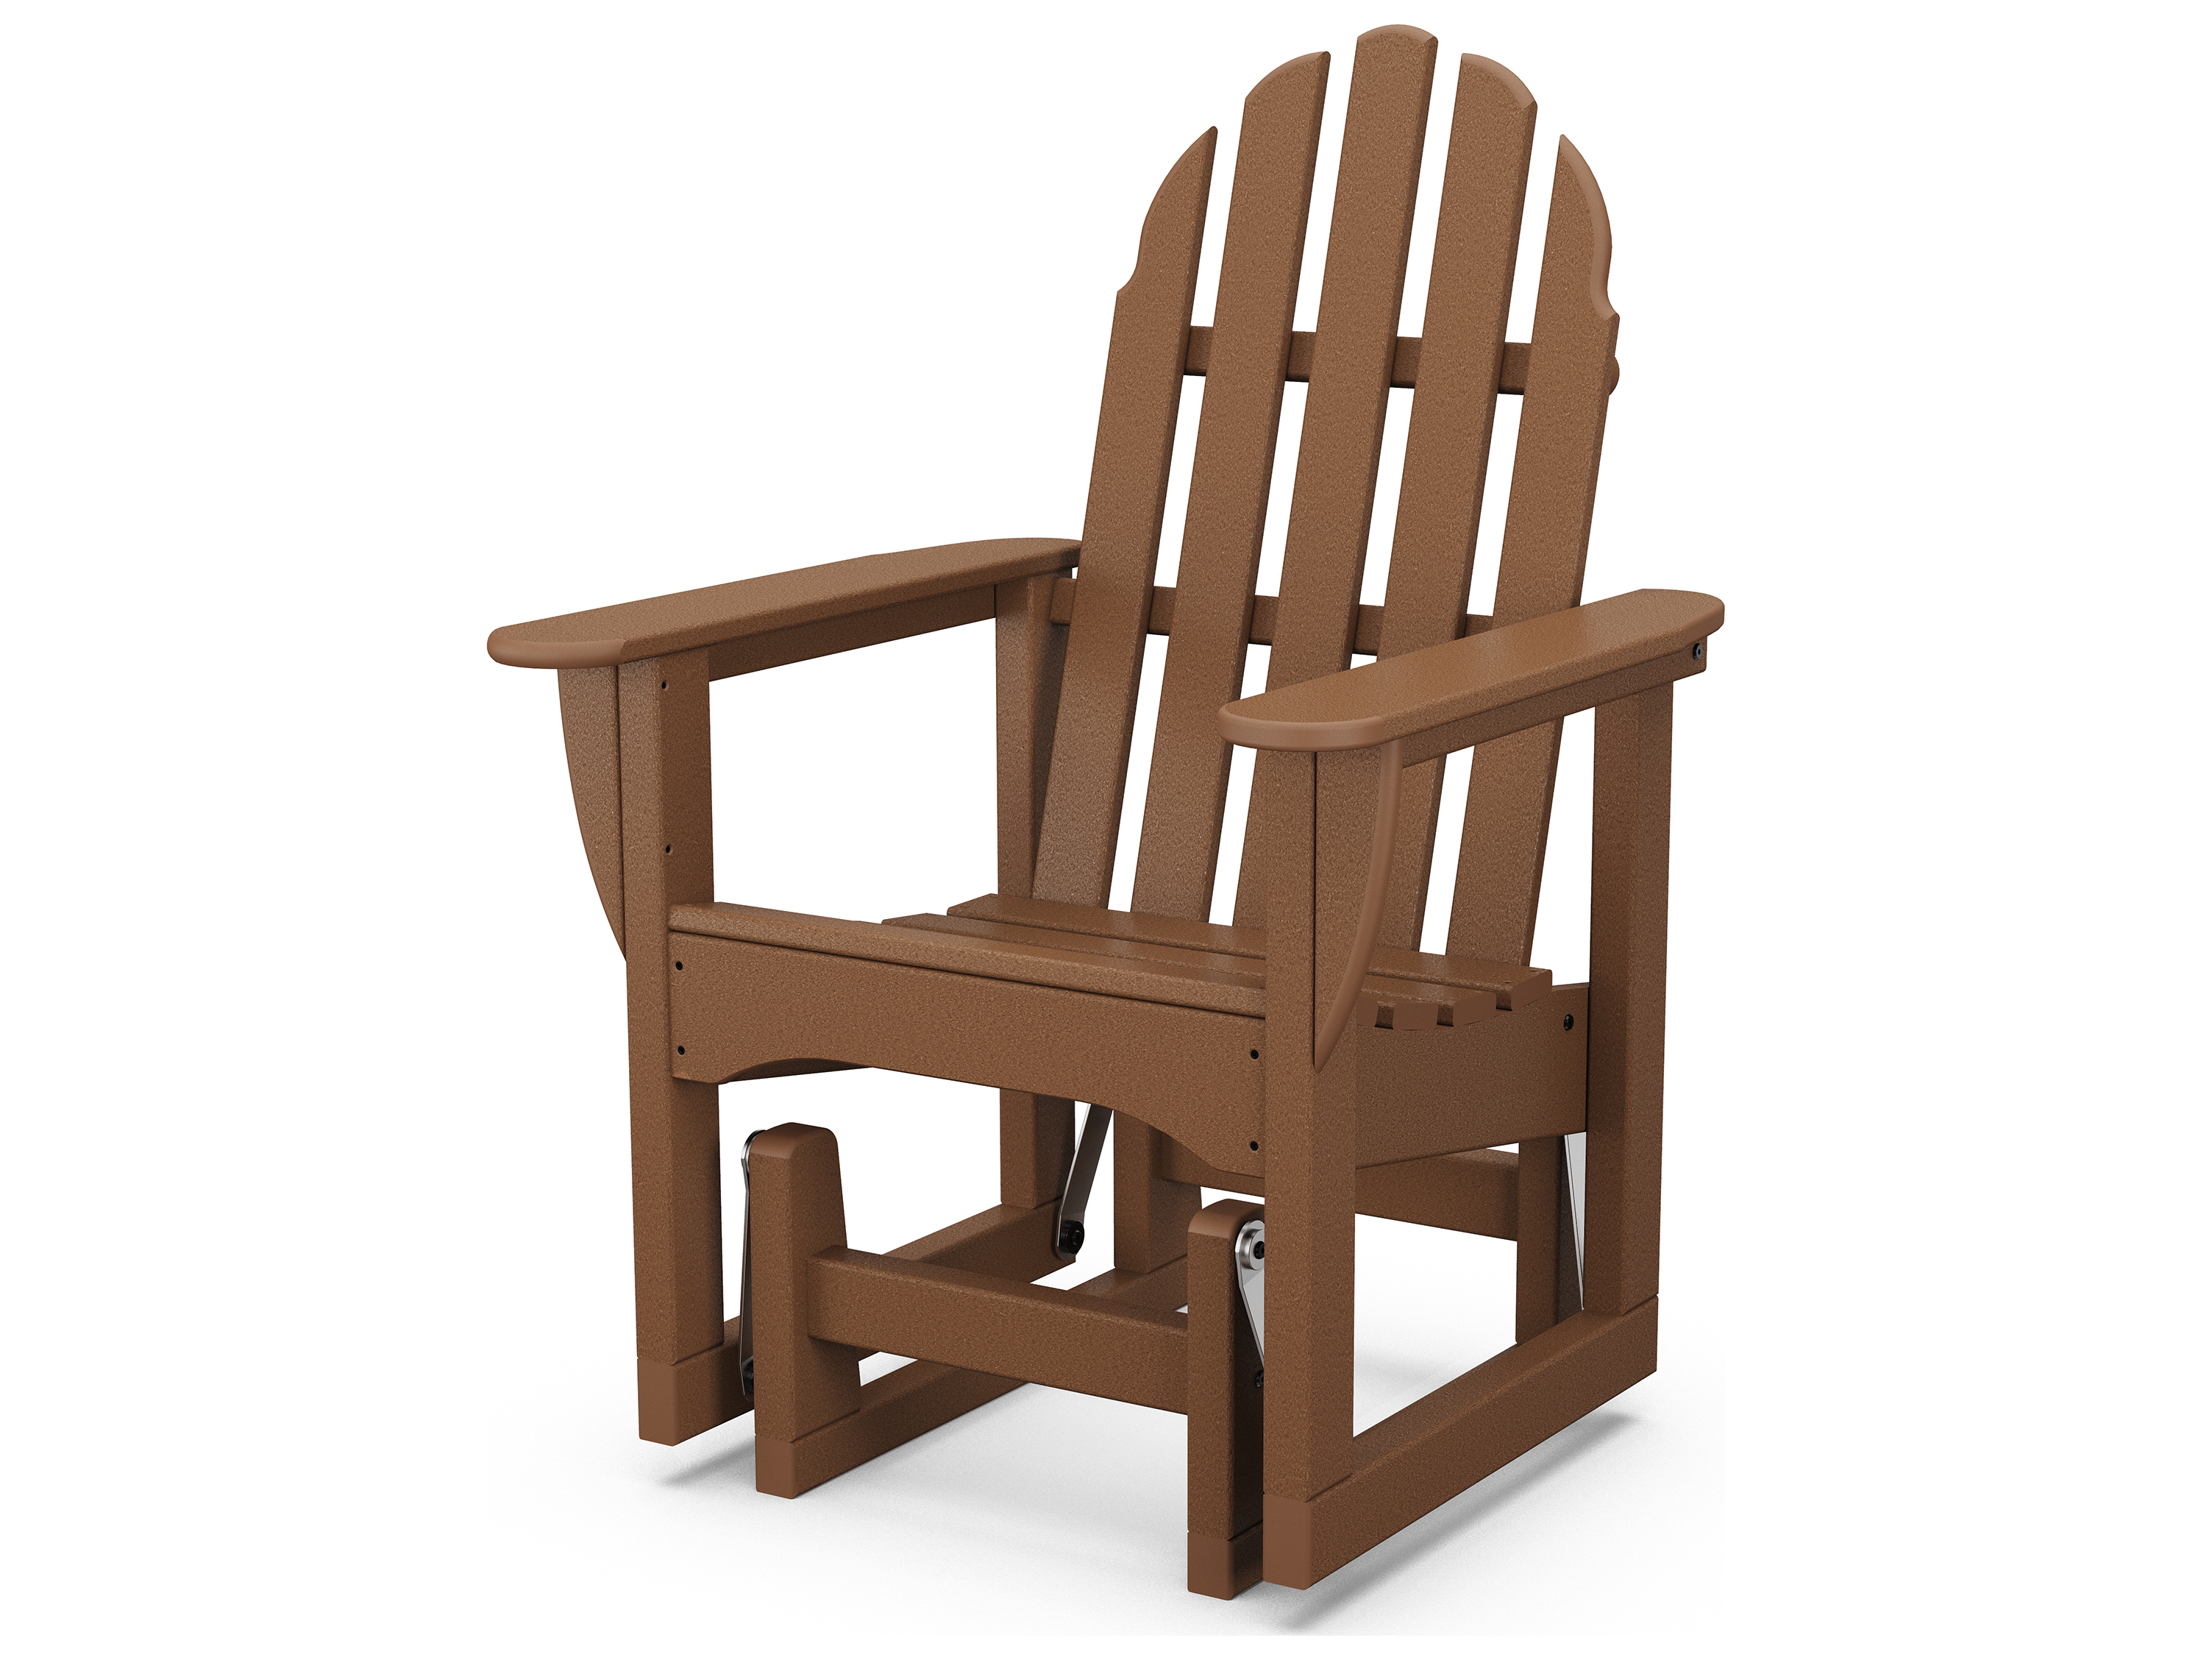 Polywood 174 Classic Adirondack Recycled Plastic Glider Chair